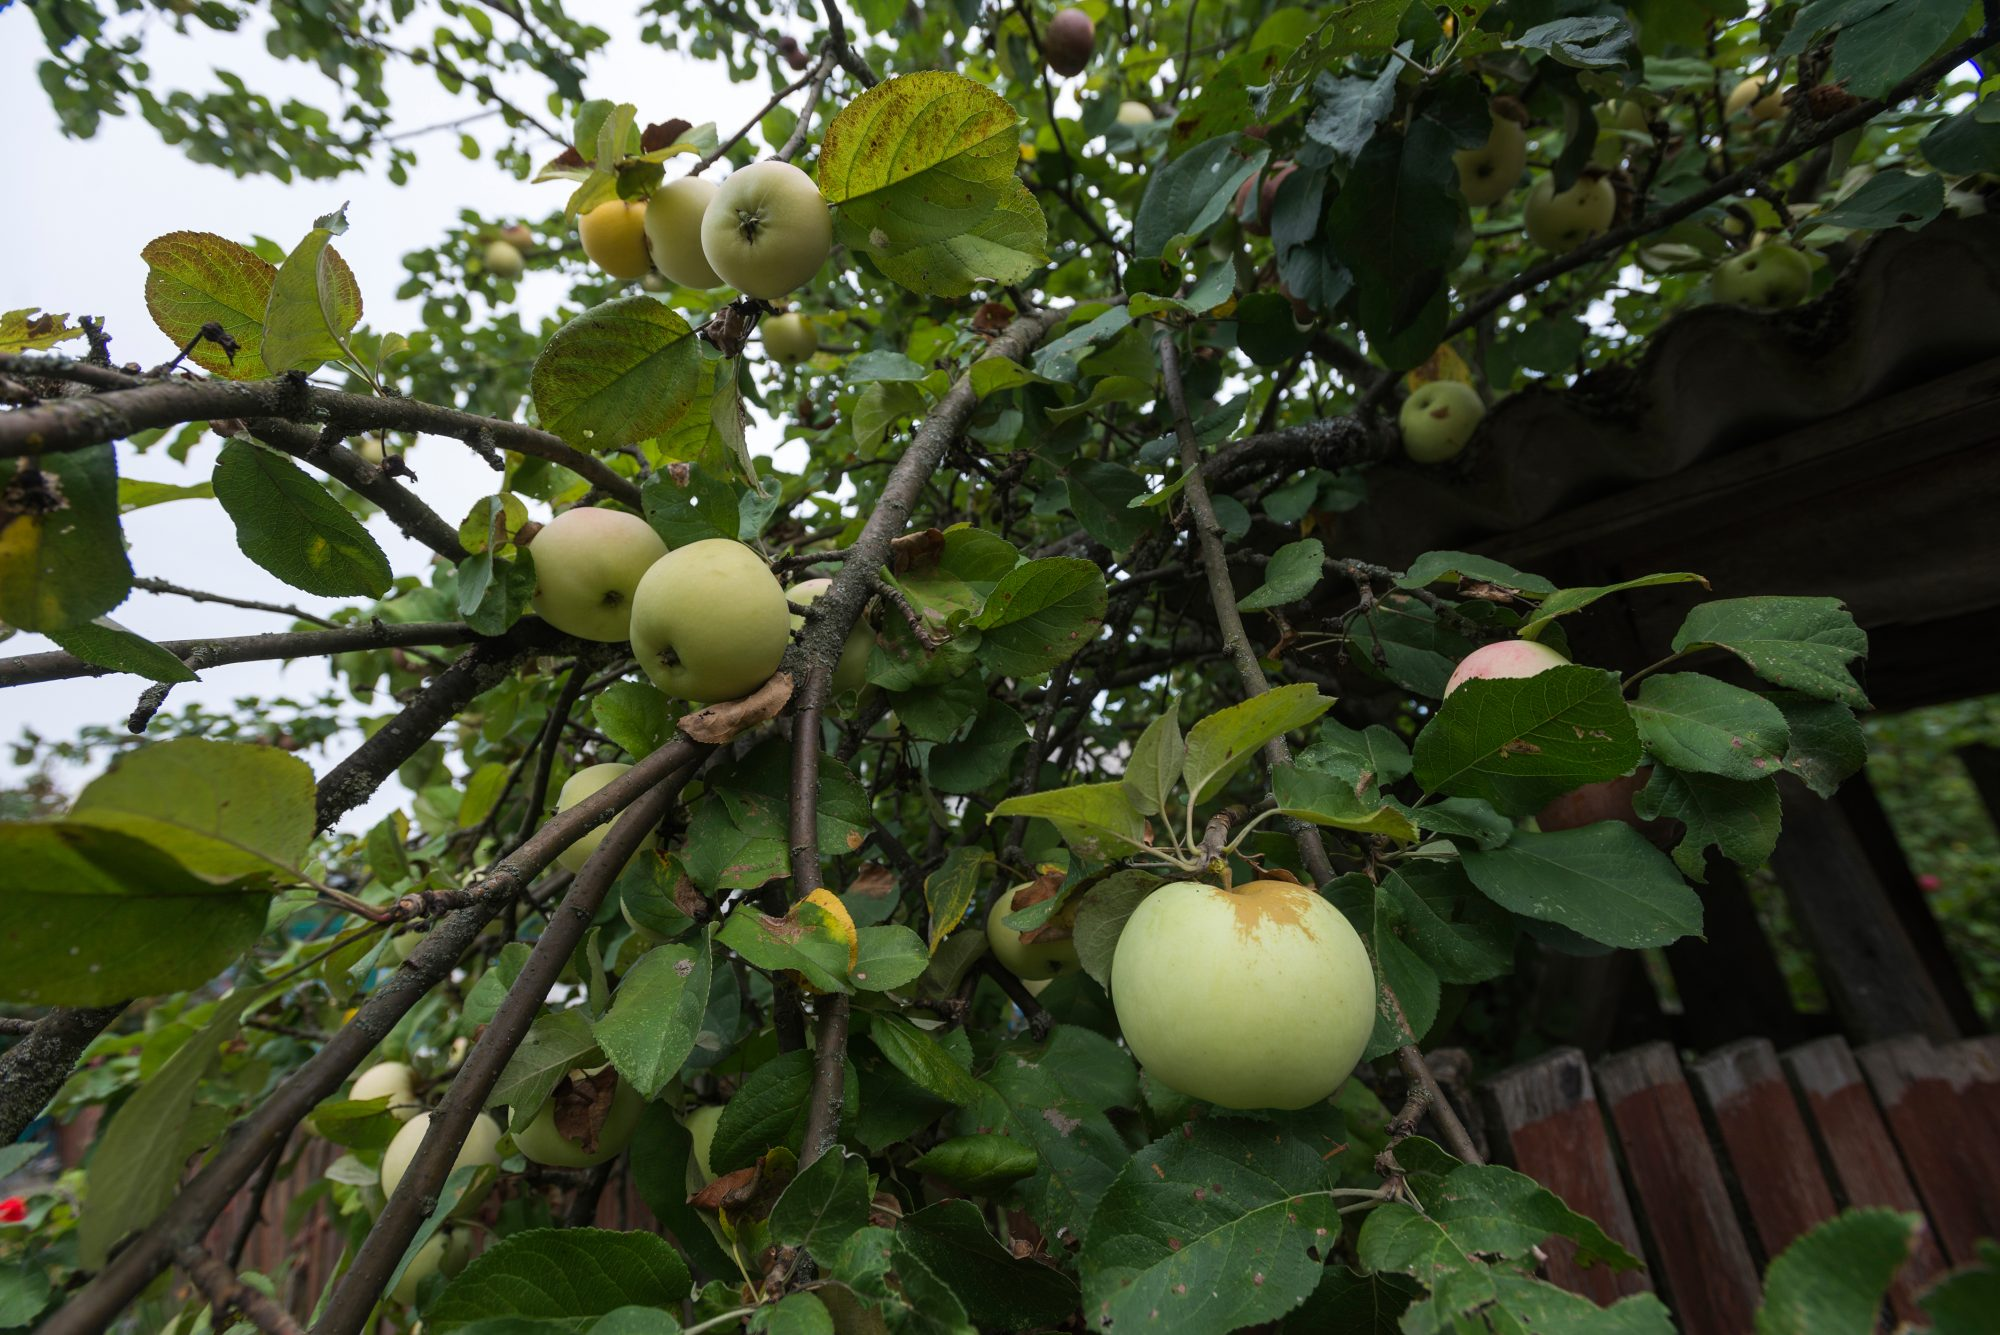 Radioactive apples grow in Chernobyl exclusion zone